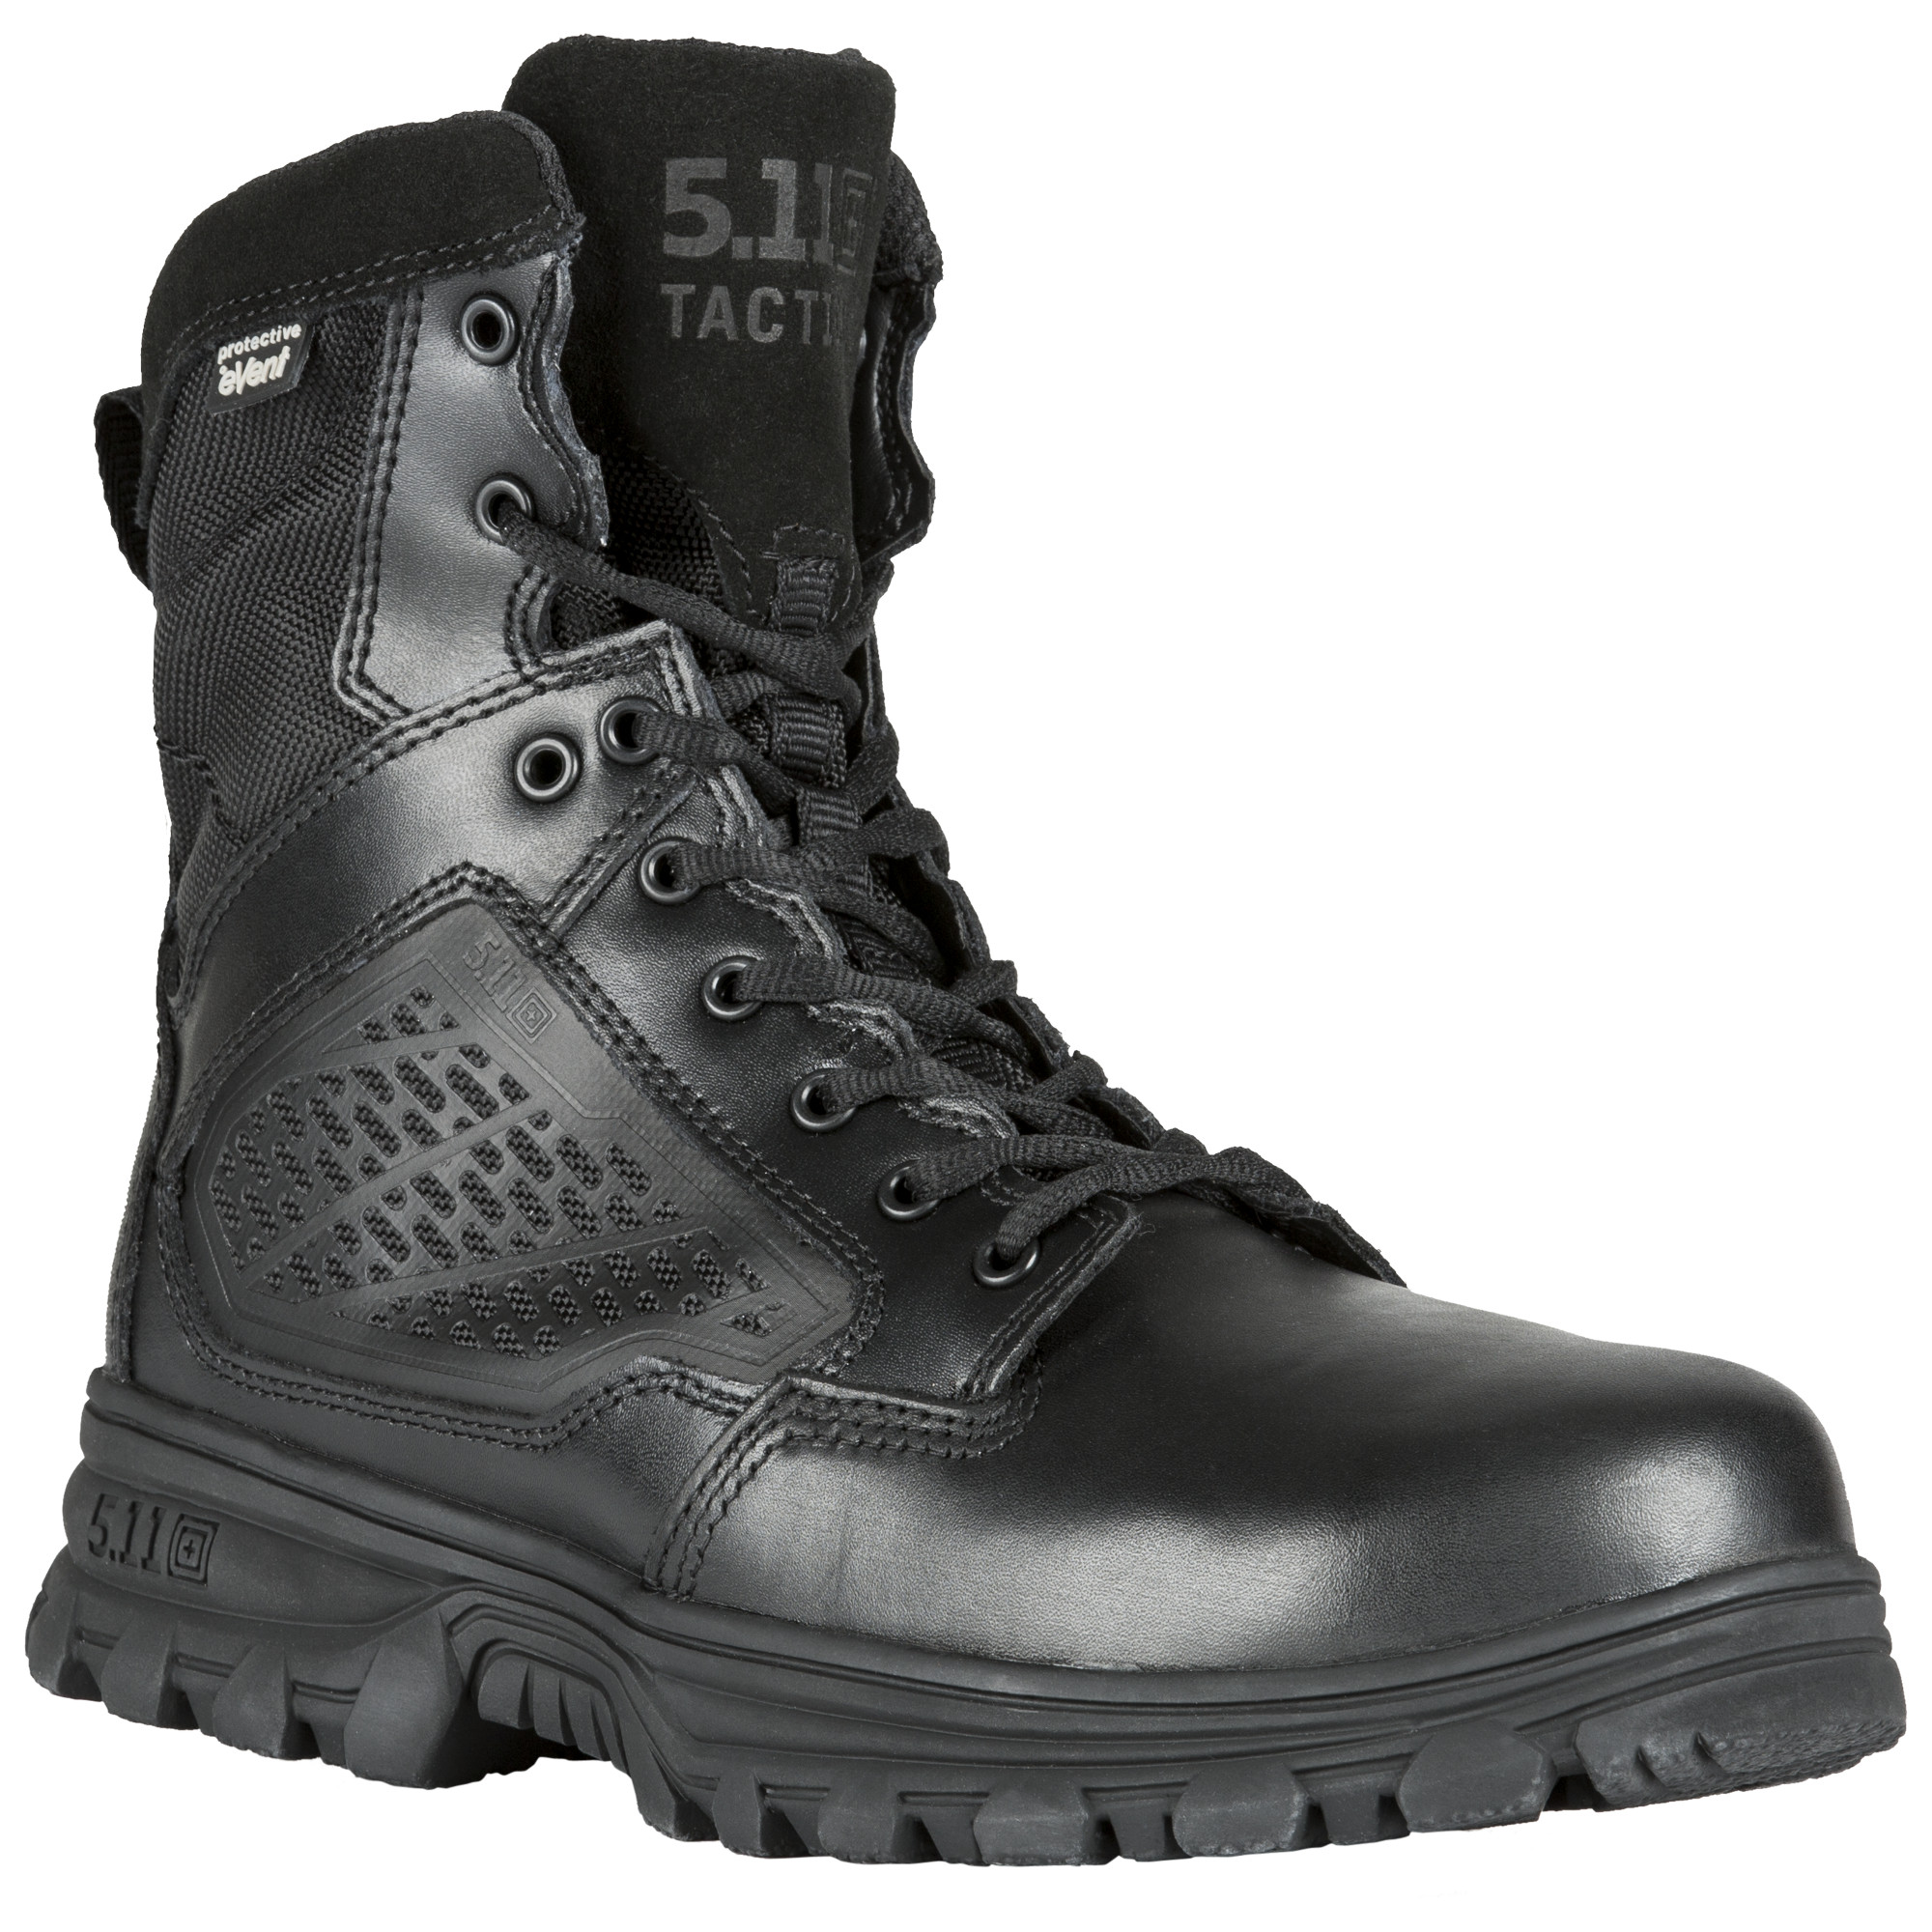 5.11 Tactical Men's EVO 6 Waterproof Boot with Sidezip thumbnail